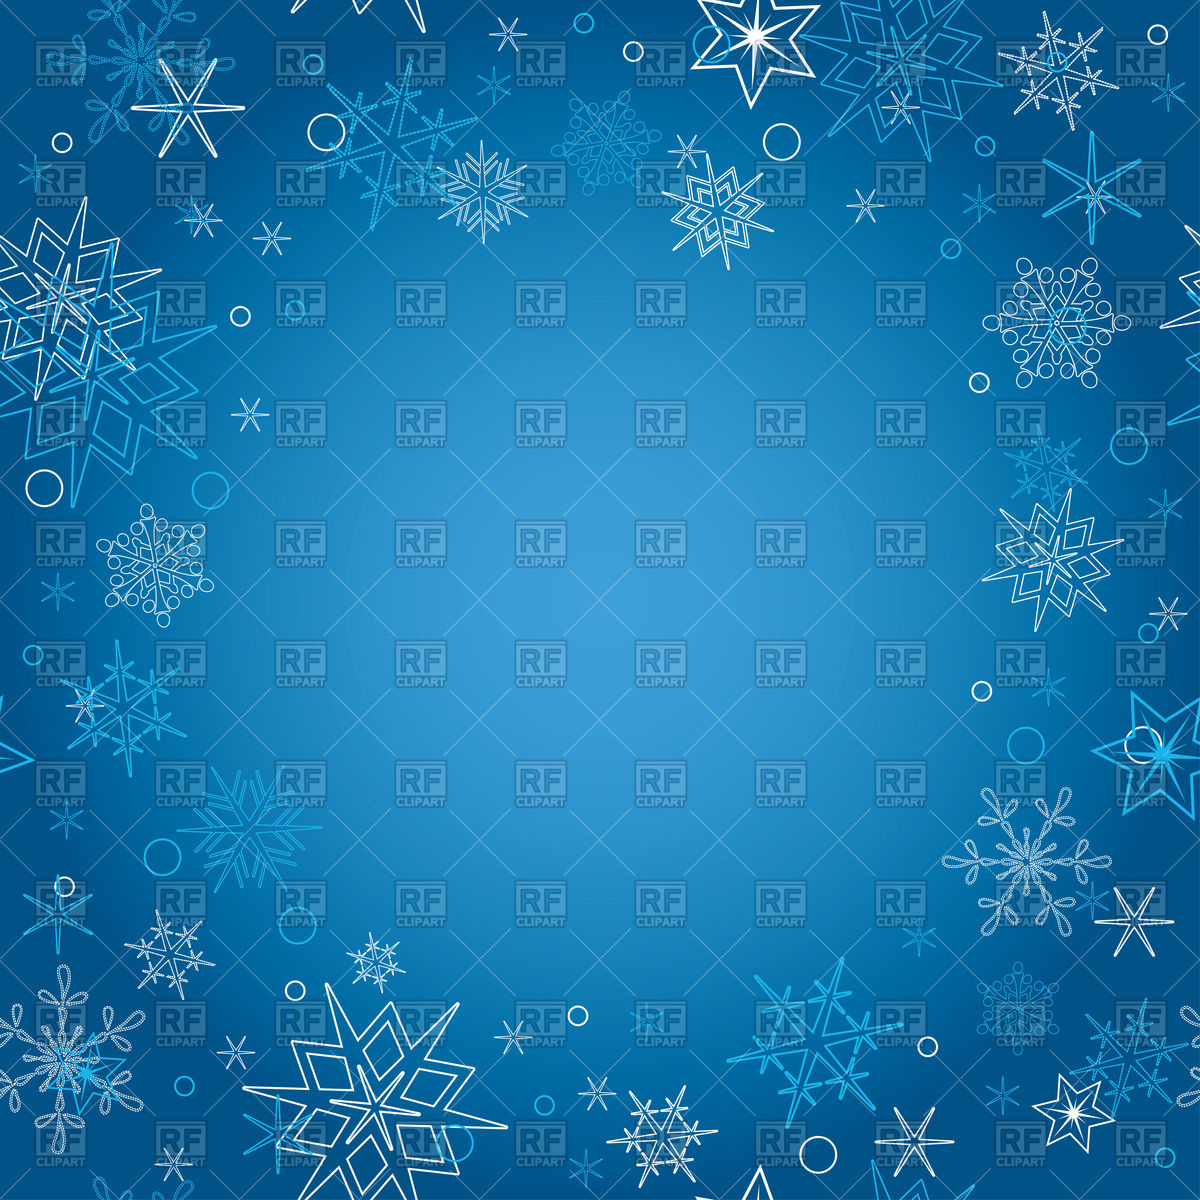 Blue christmas background with snowflakes Vector Image of 1200x1200